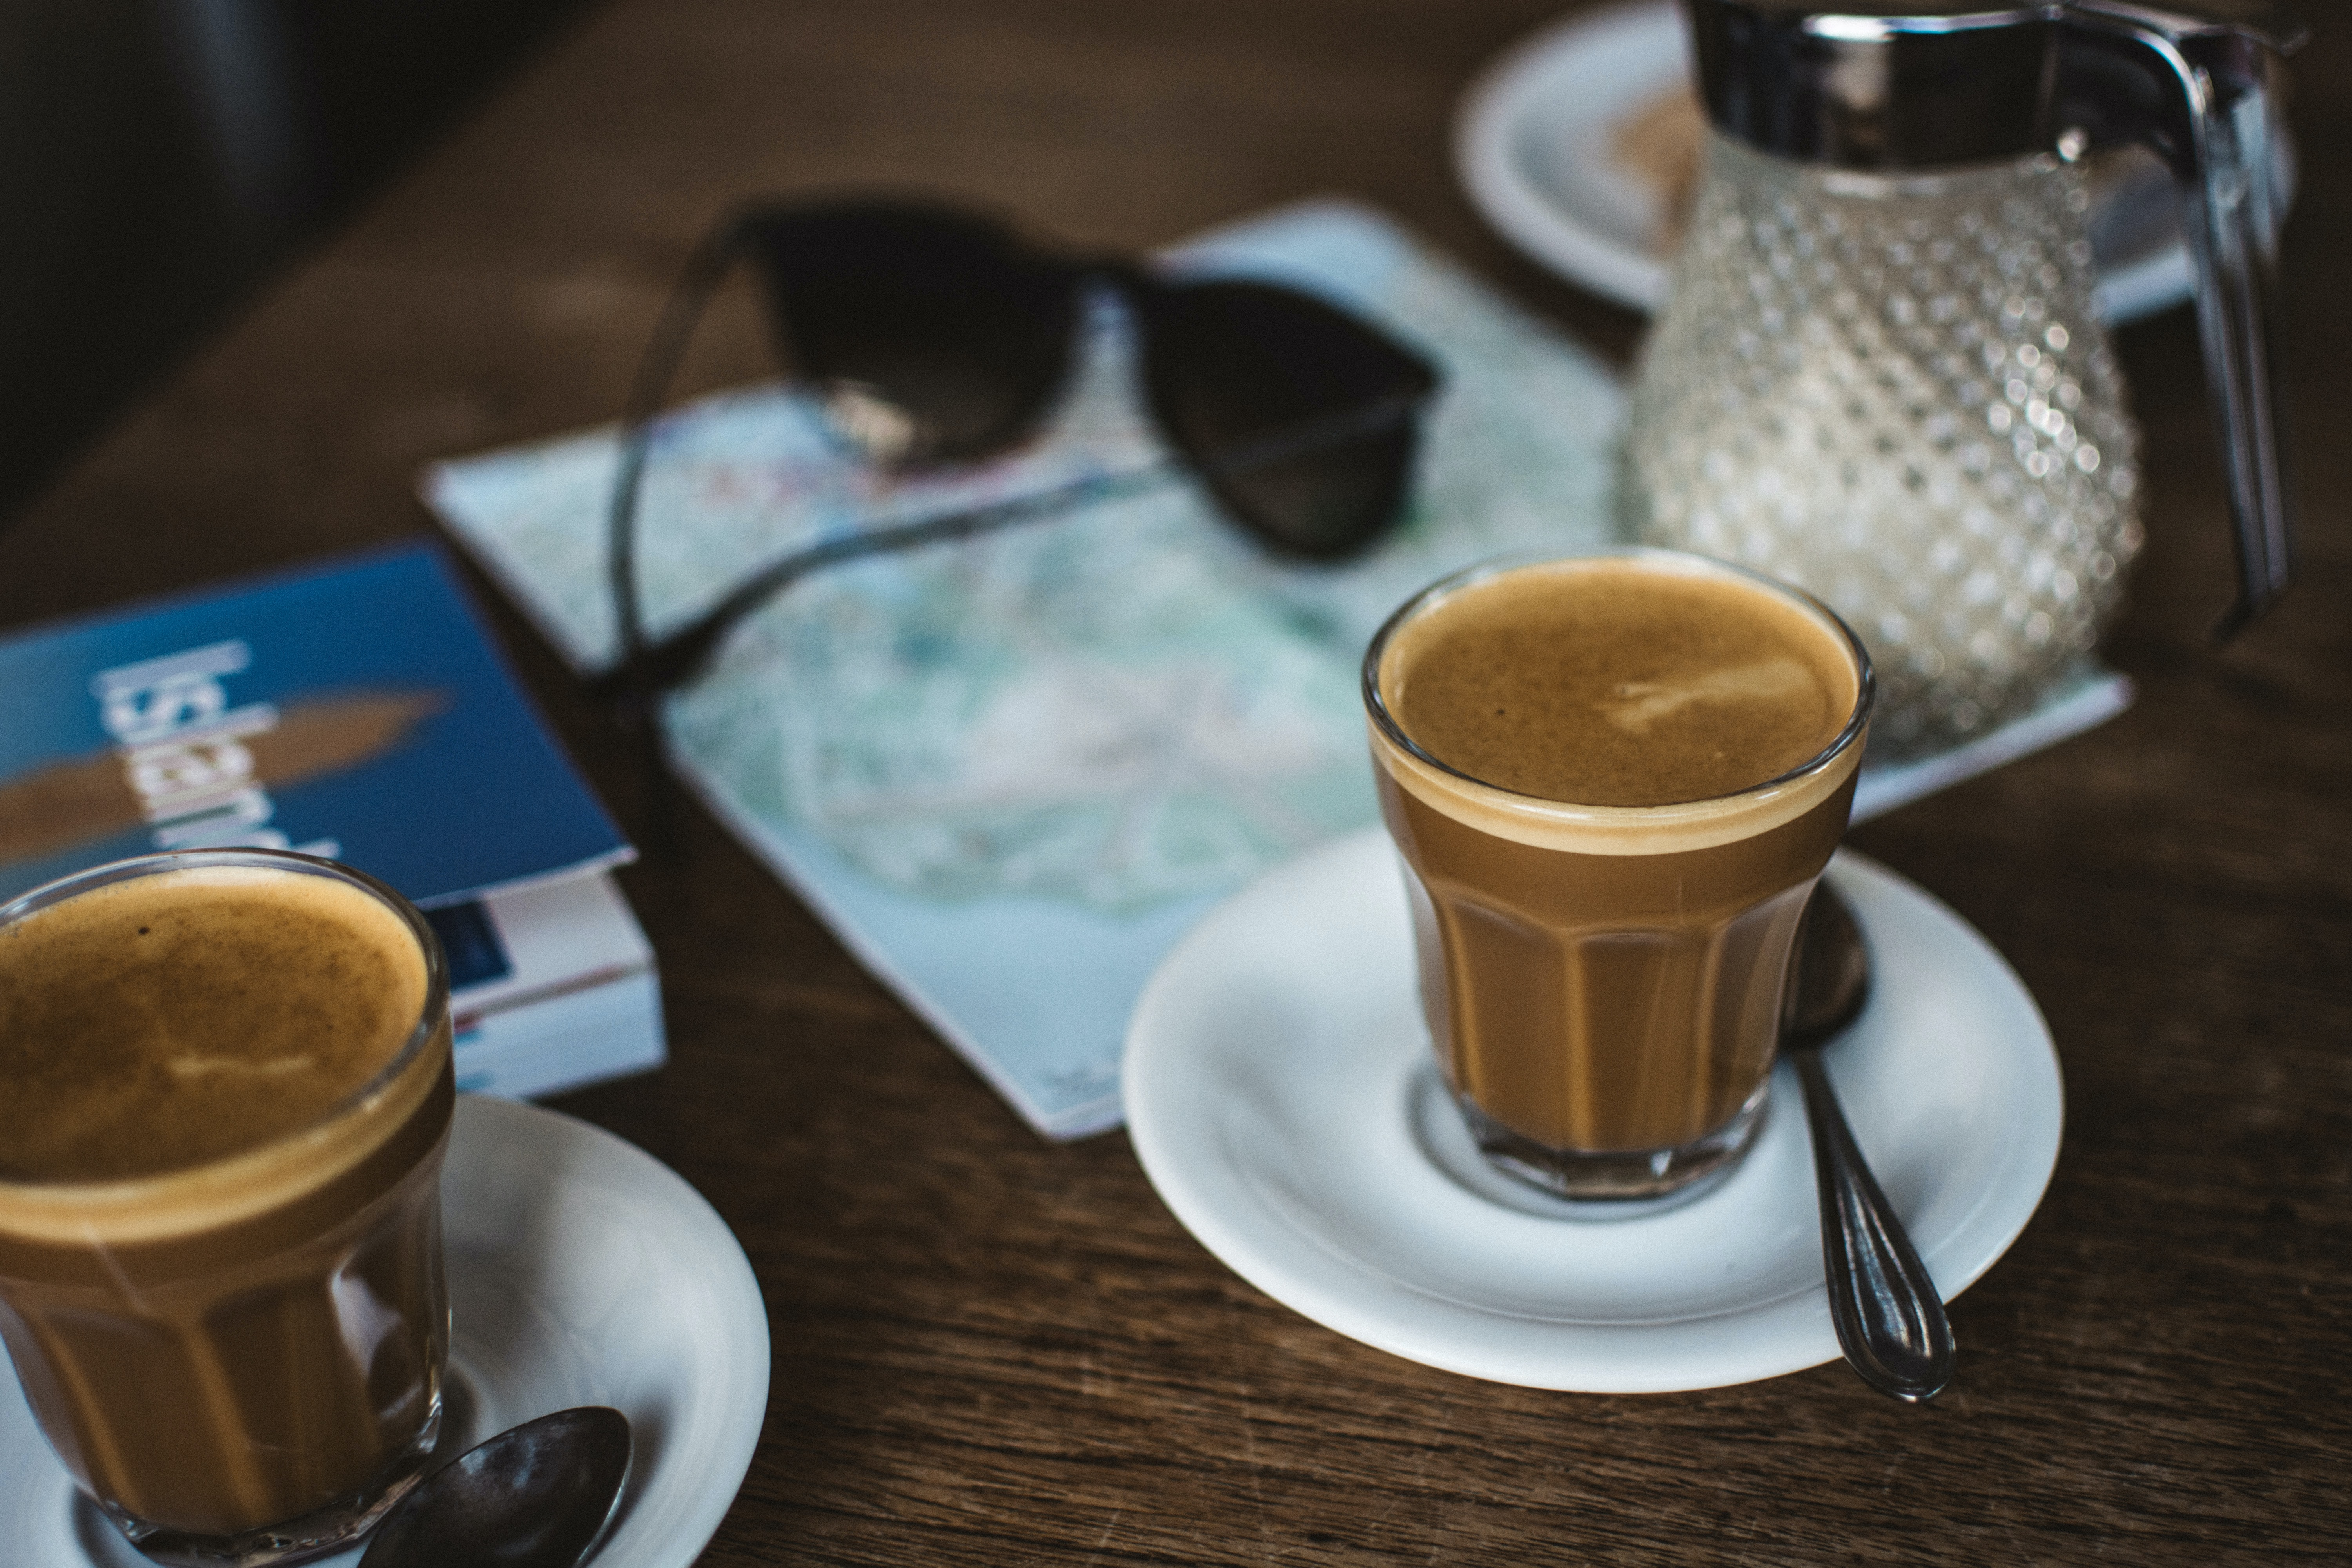 Latte in a clear glass on a white saucer with a spoon with sunglasses and a map on the table